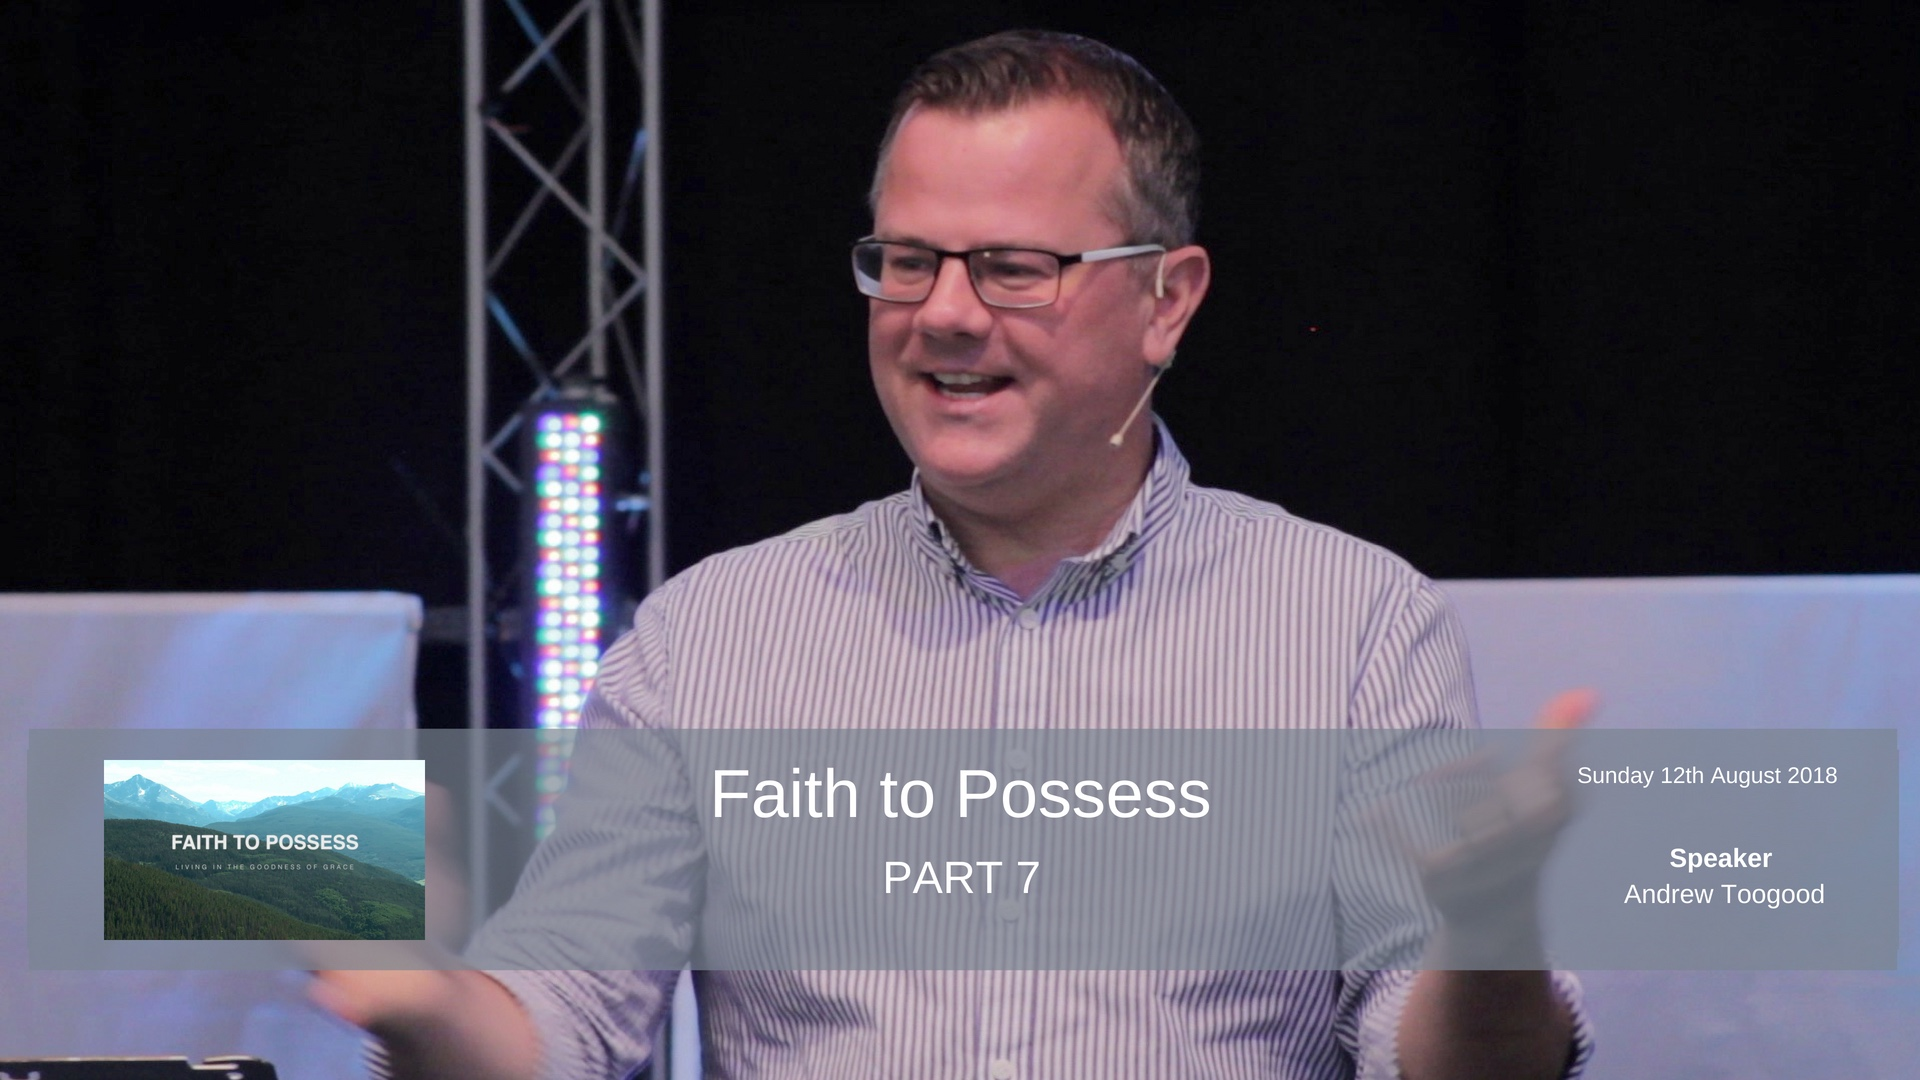 Faith to Possess - Part 7 - Does God count your doubt against you?